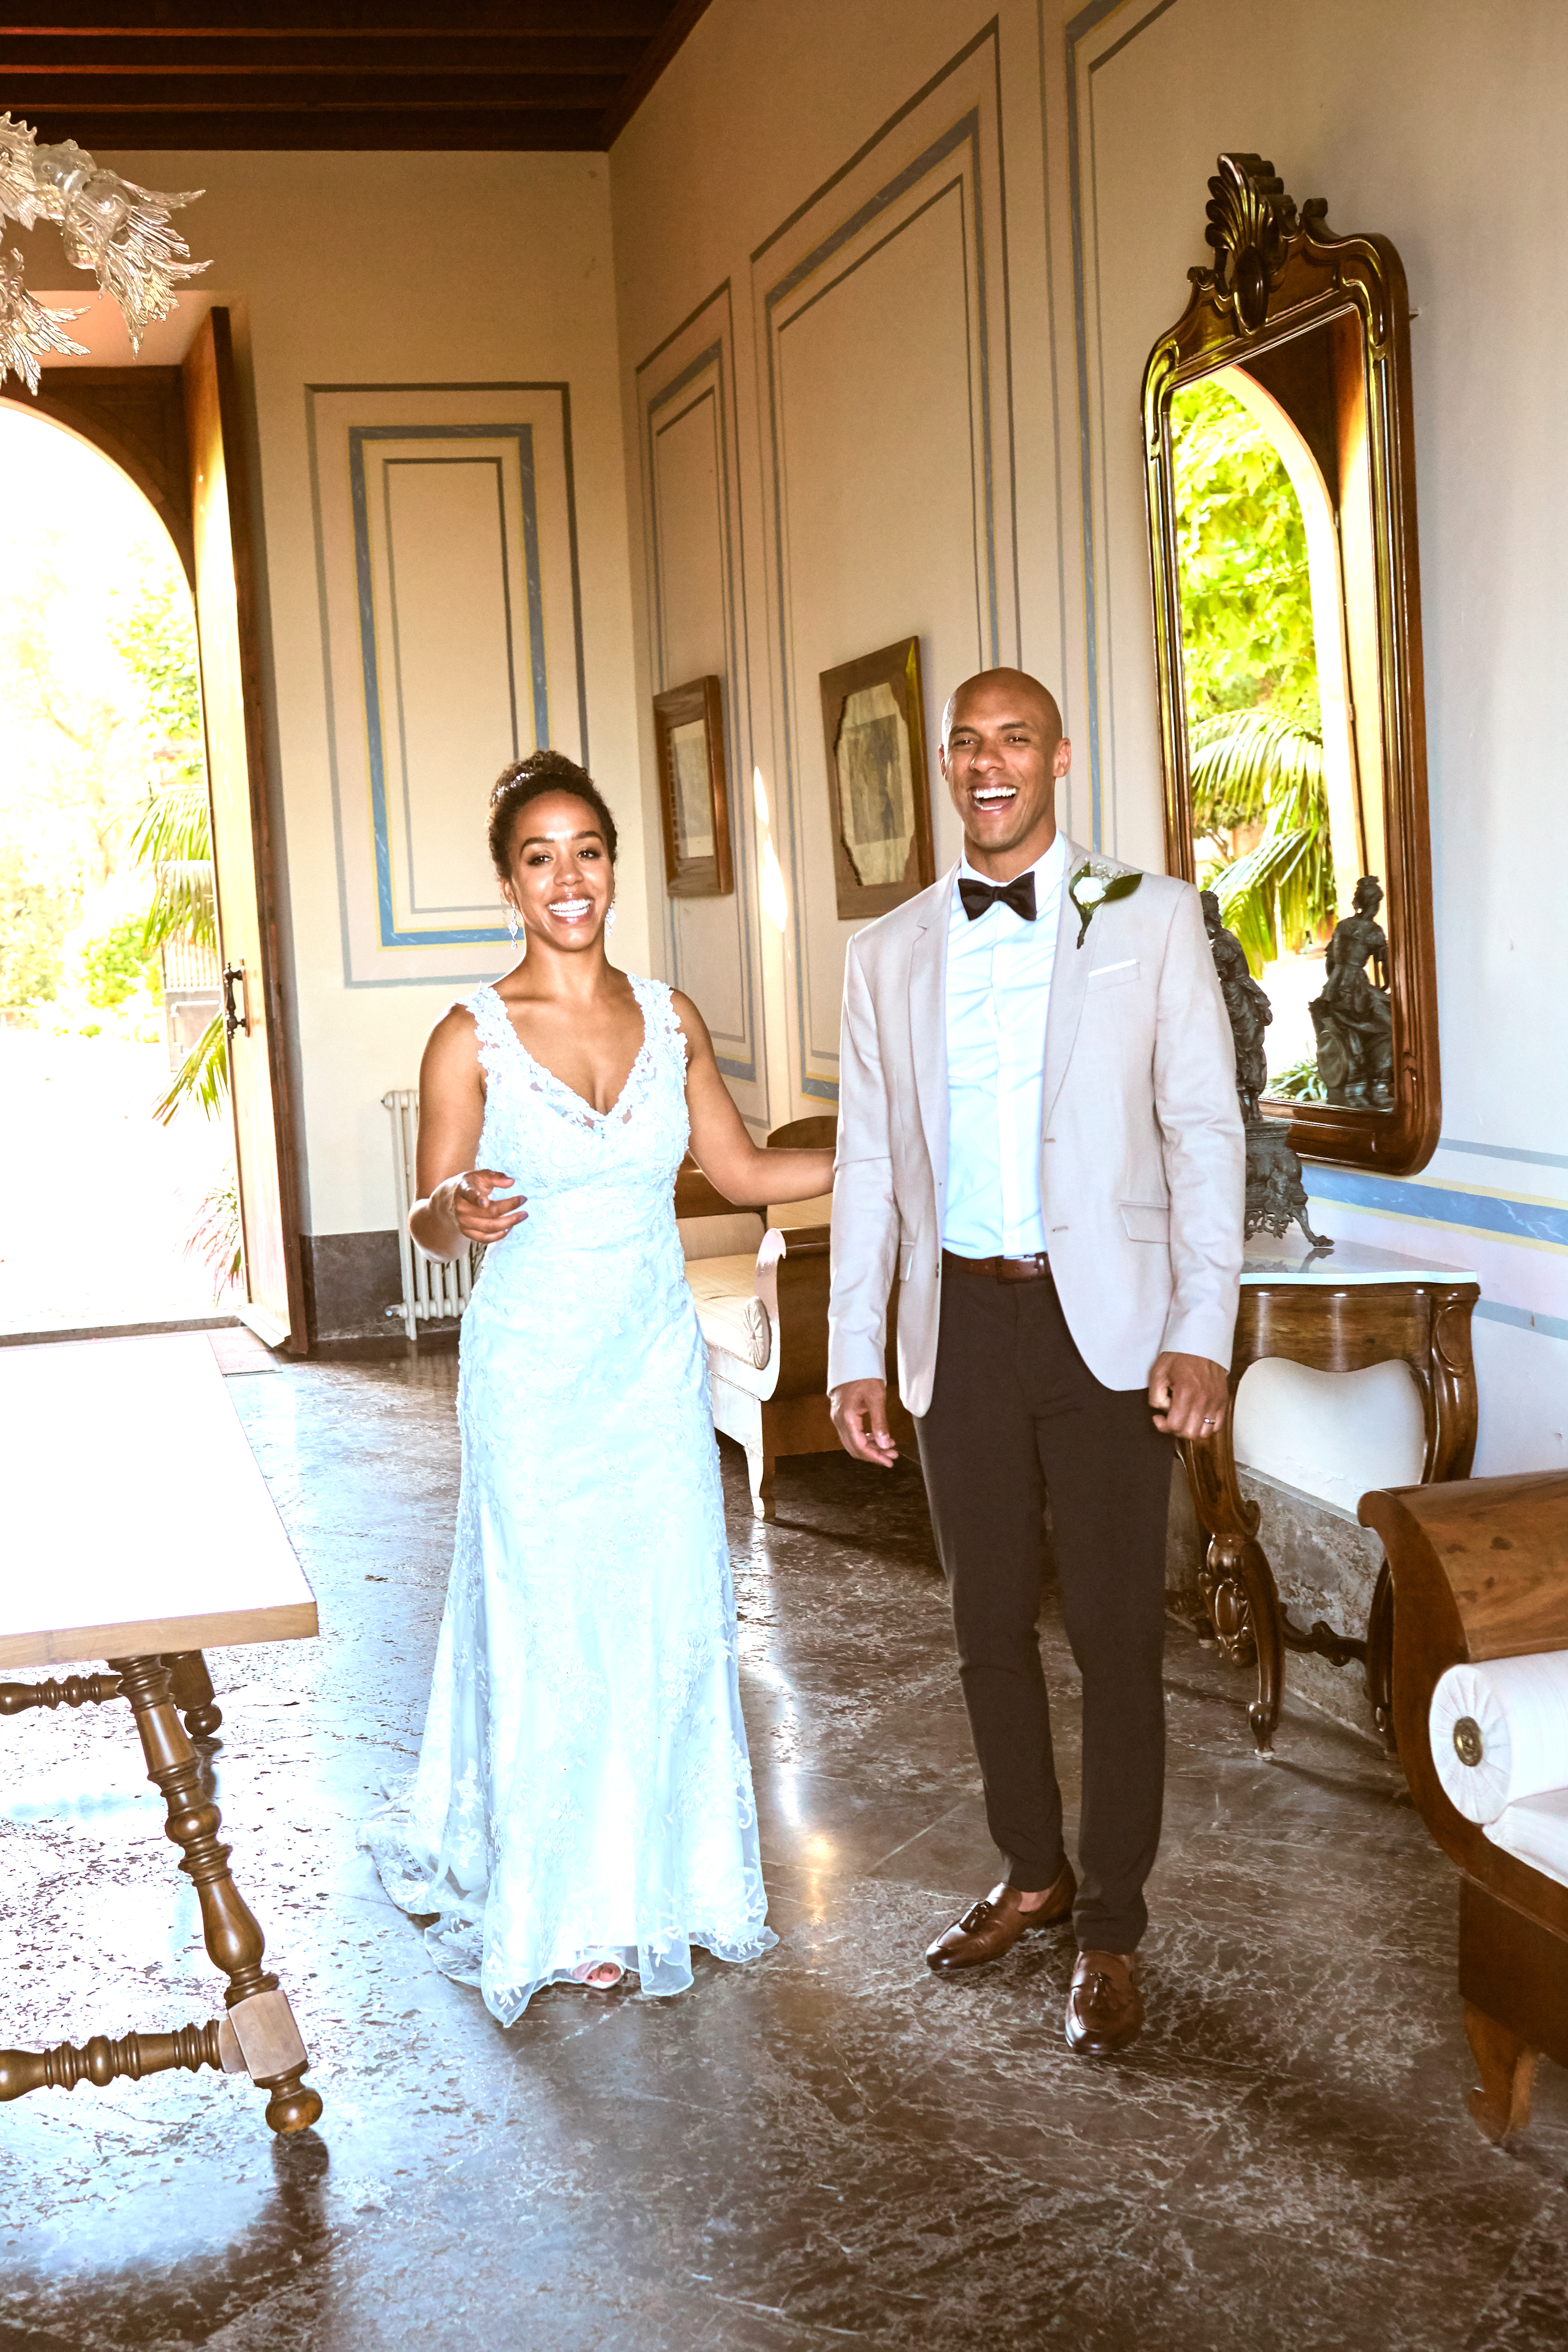 The bride and groom inside the elegant Finca, Thad Medford Photograhy